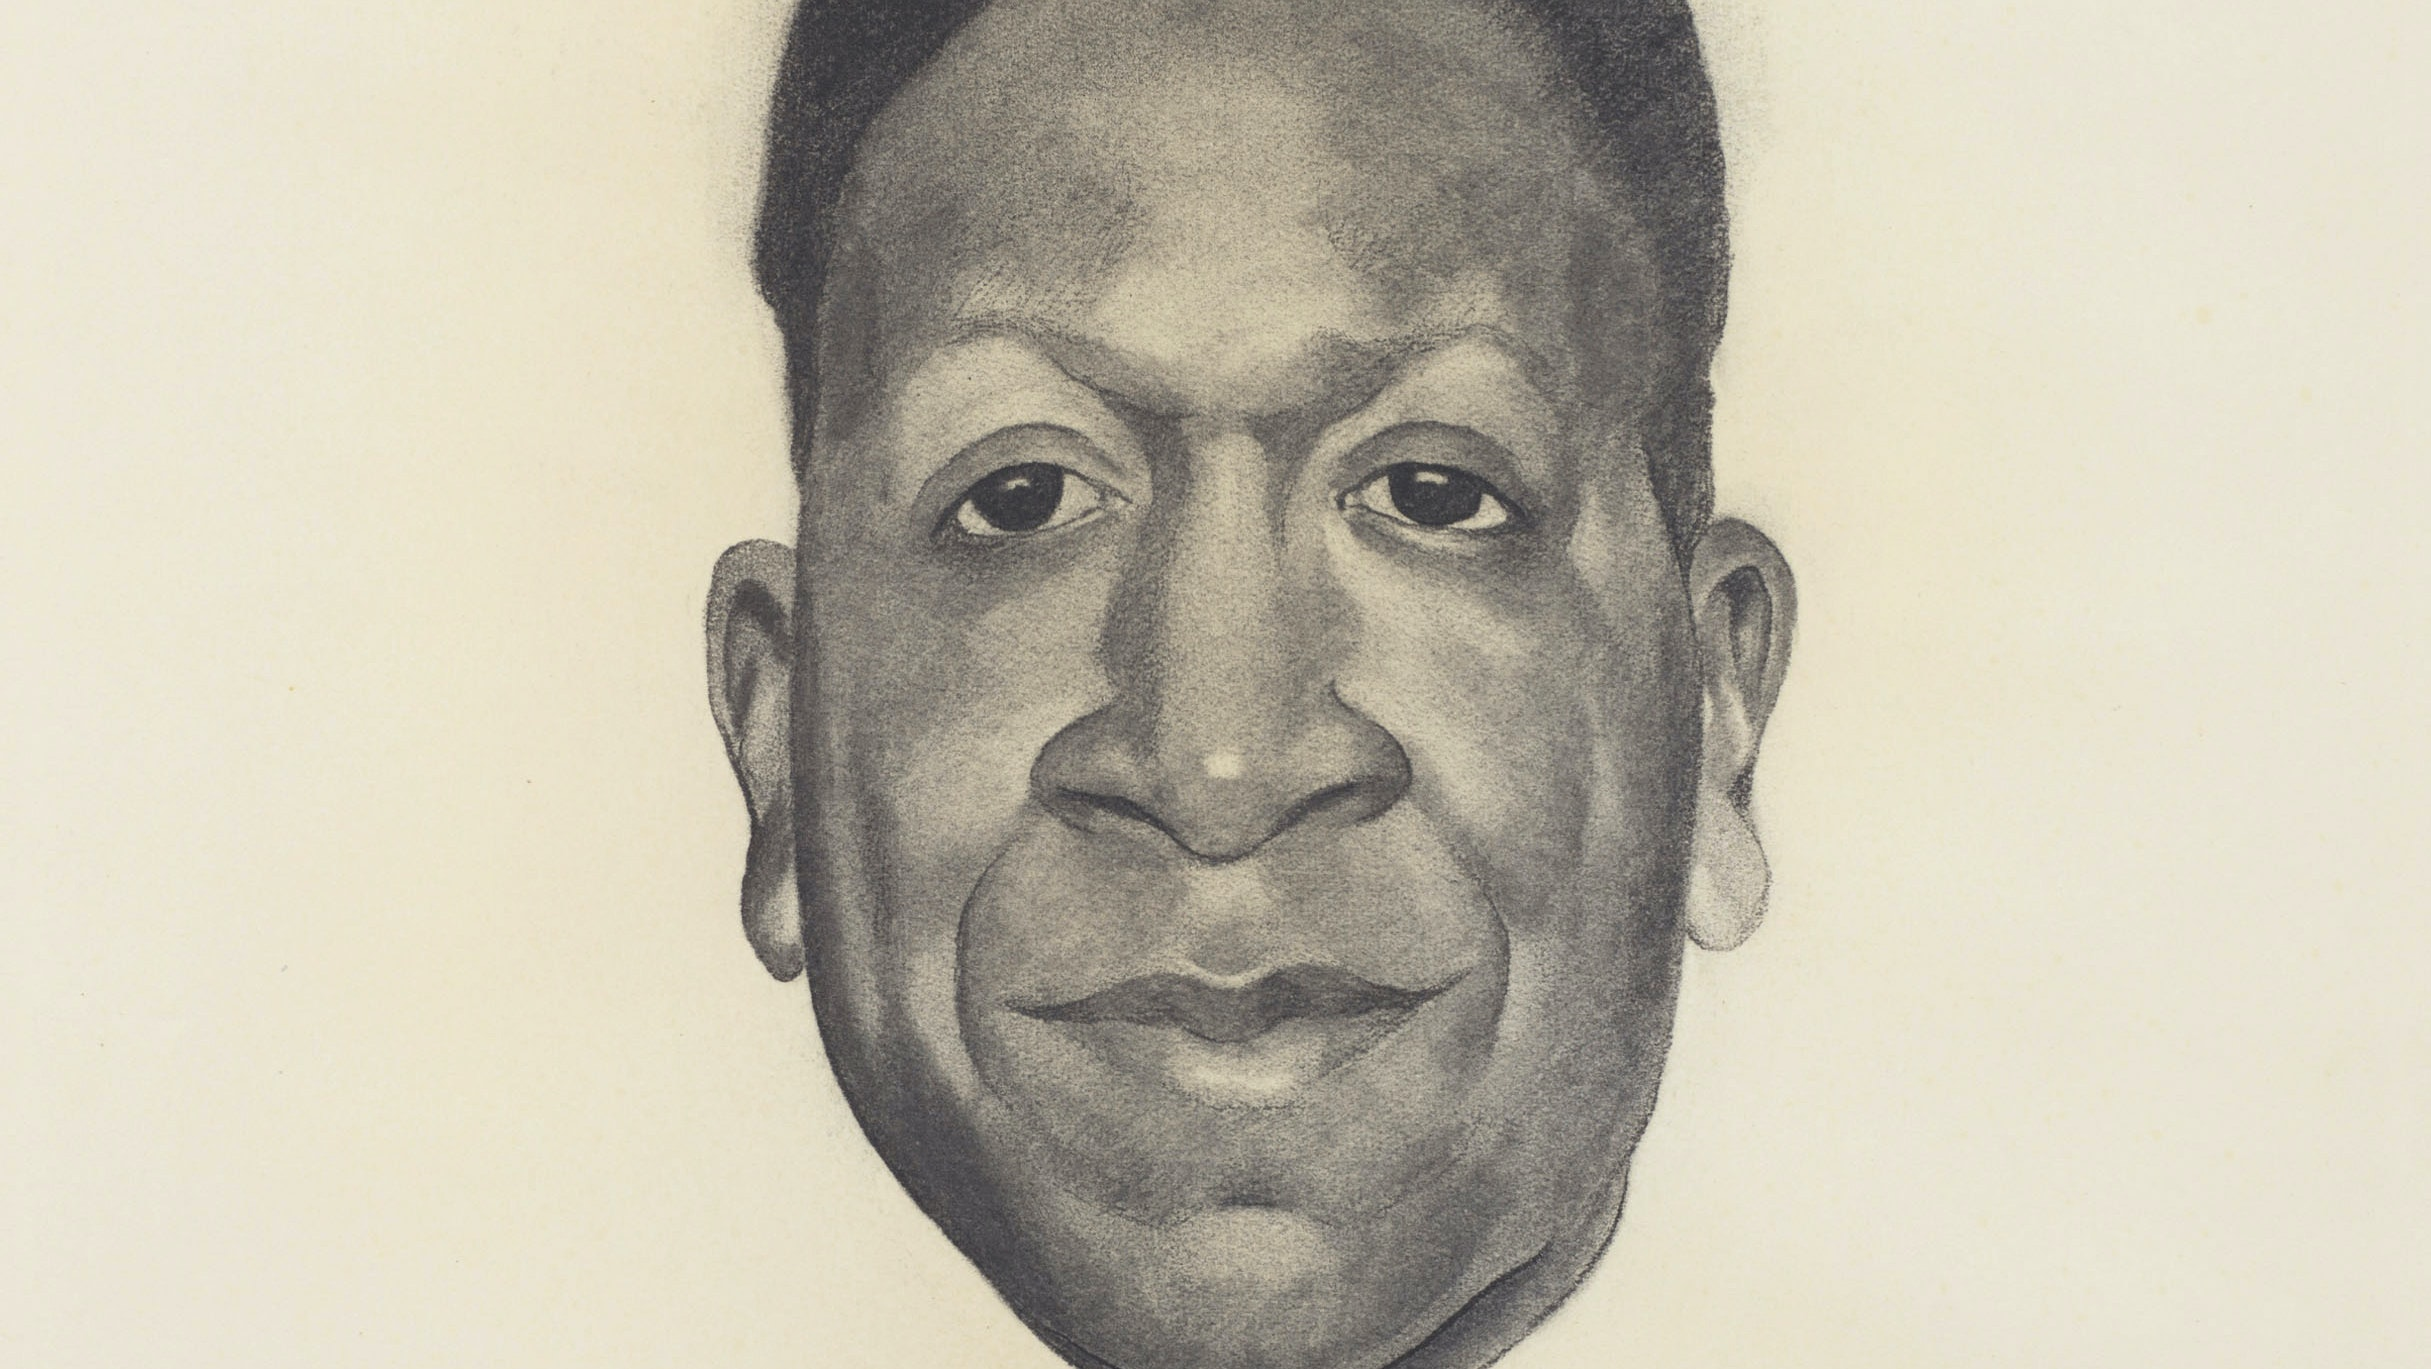 Georgia O'Keeffe.  Beauford Delaney, 1943. Harry B. and Bessie K. Braude Memorial Fund.